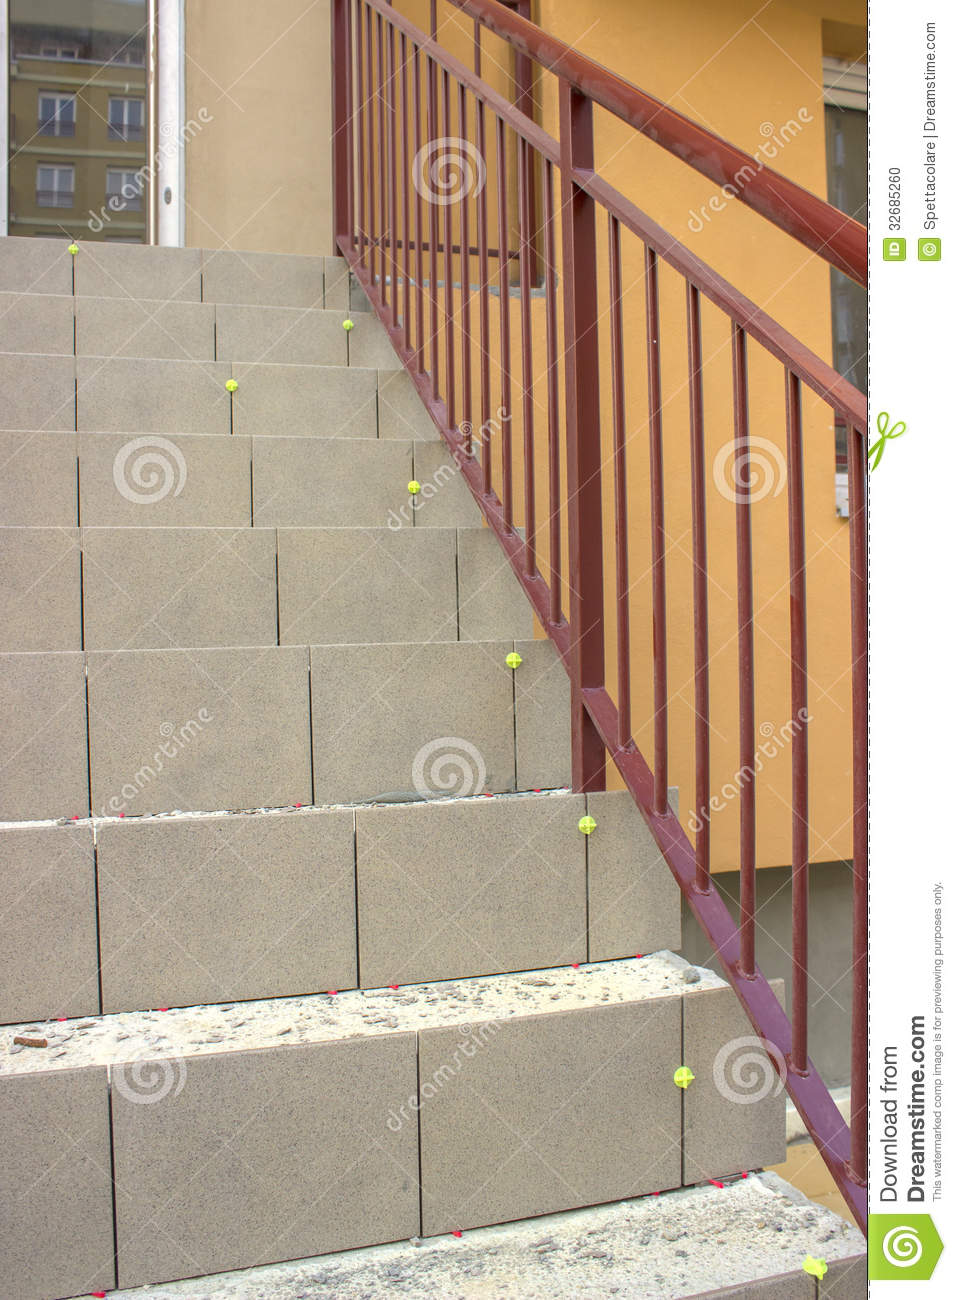 Laying ceramic tile on concrete stairs stock photo image of hard laying ceramic tile on concrete stairs dailygadgetfo Choice Image